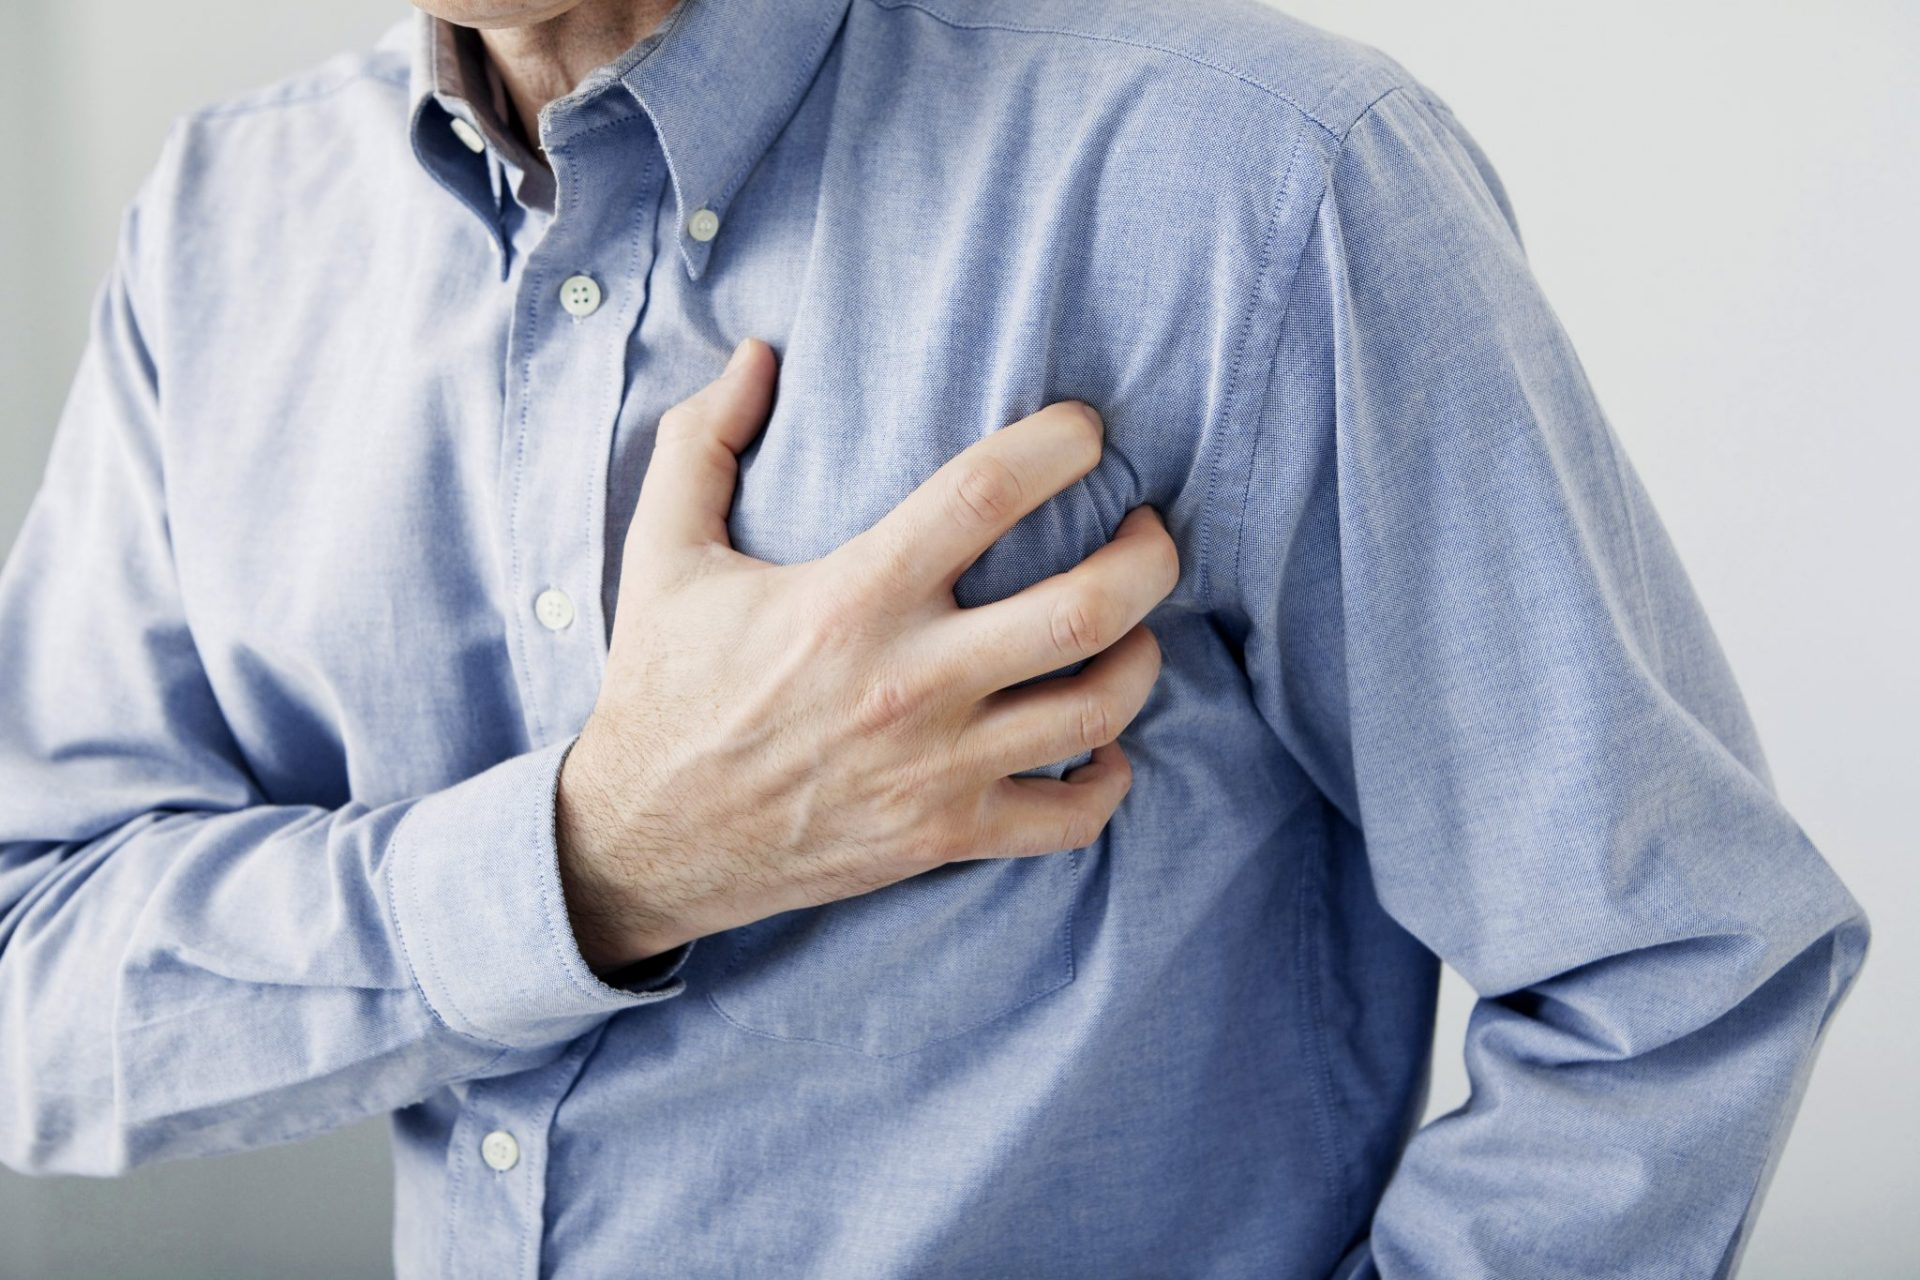 true cause of heart attacks shocking to most cardiologists, Skeleton